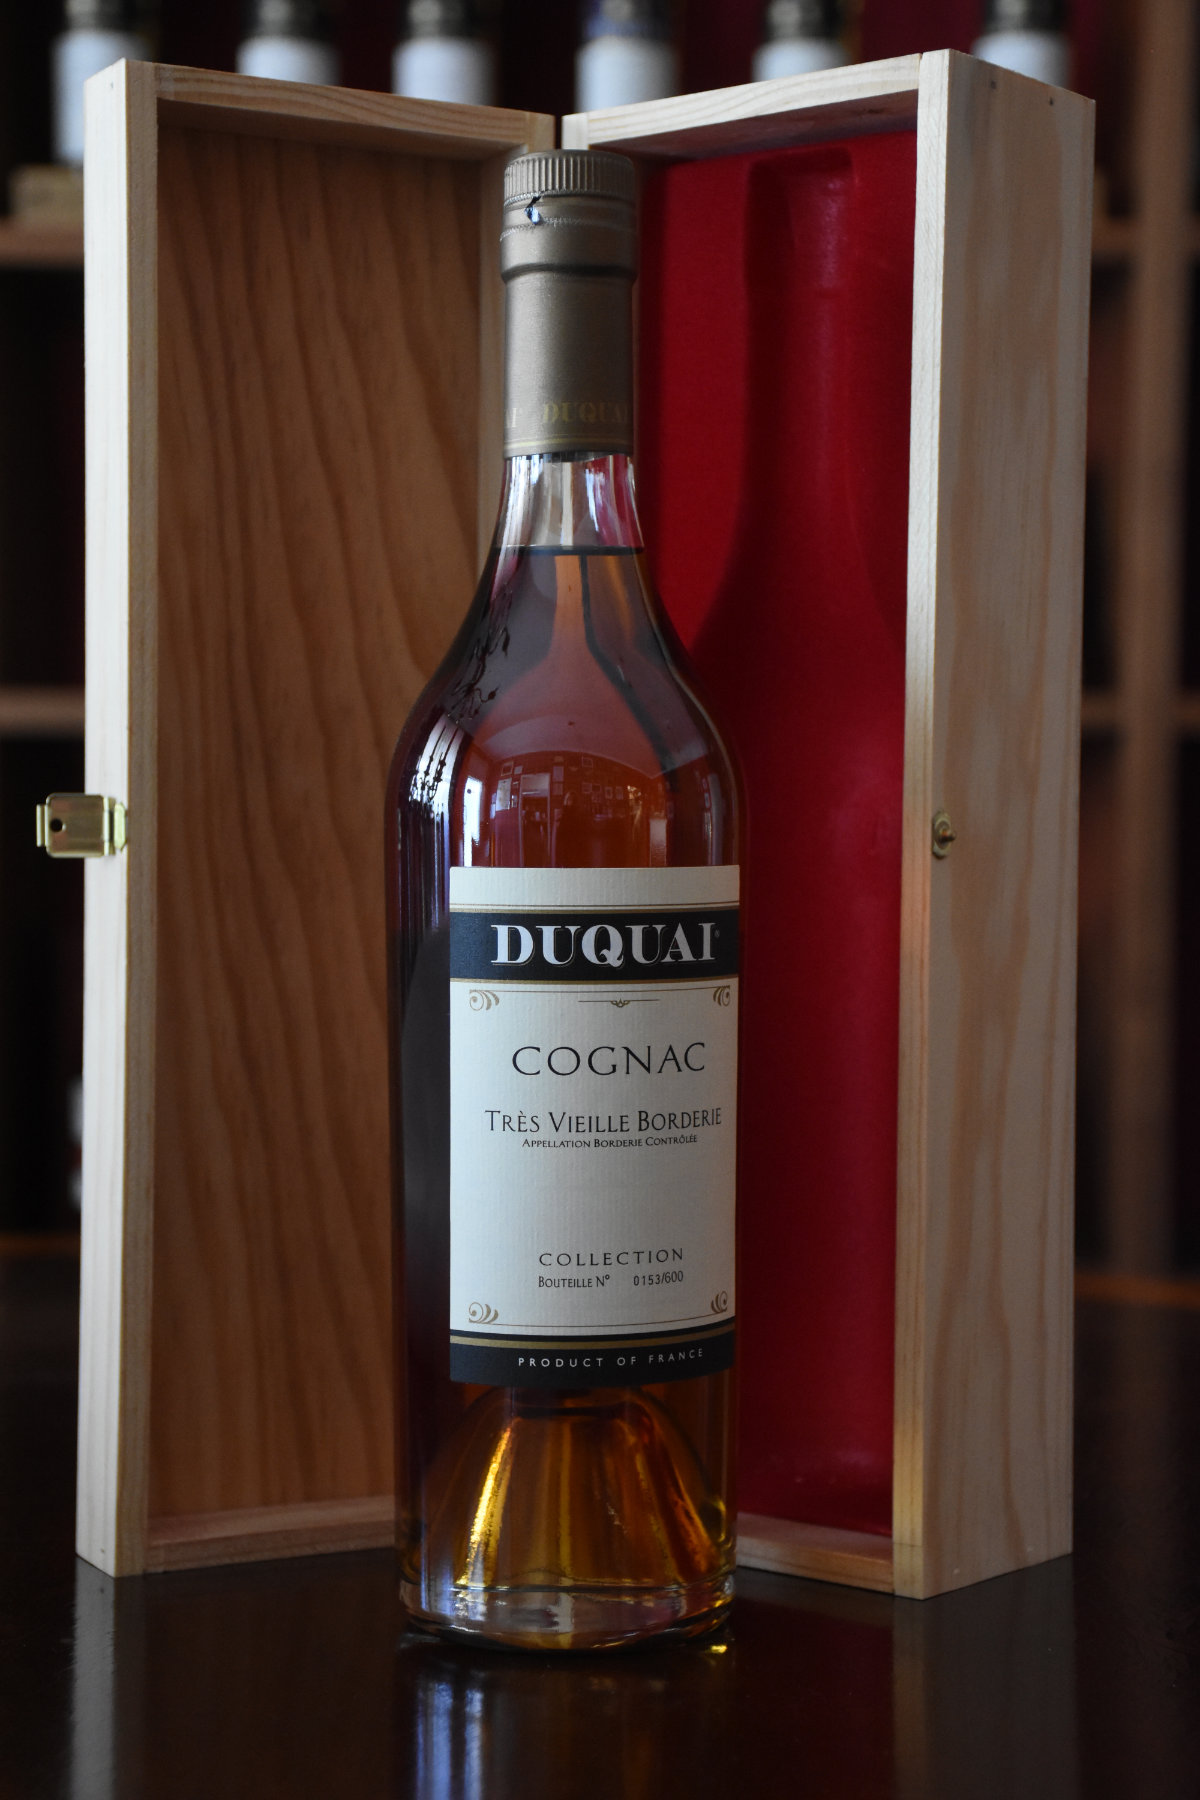 Duquai Cognac Très Vieille Borderie, 60 Jahr im Fass gereift, 40% Alc.Vol., Distillery Original Bottling